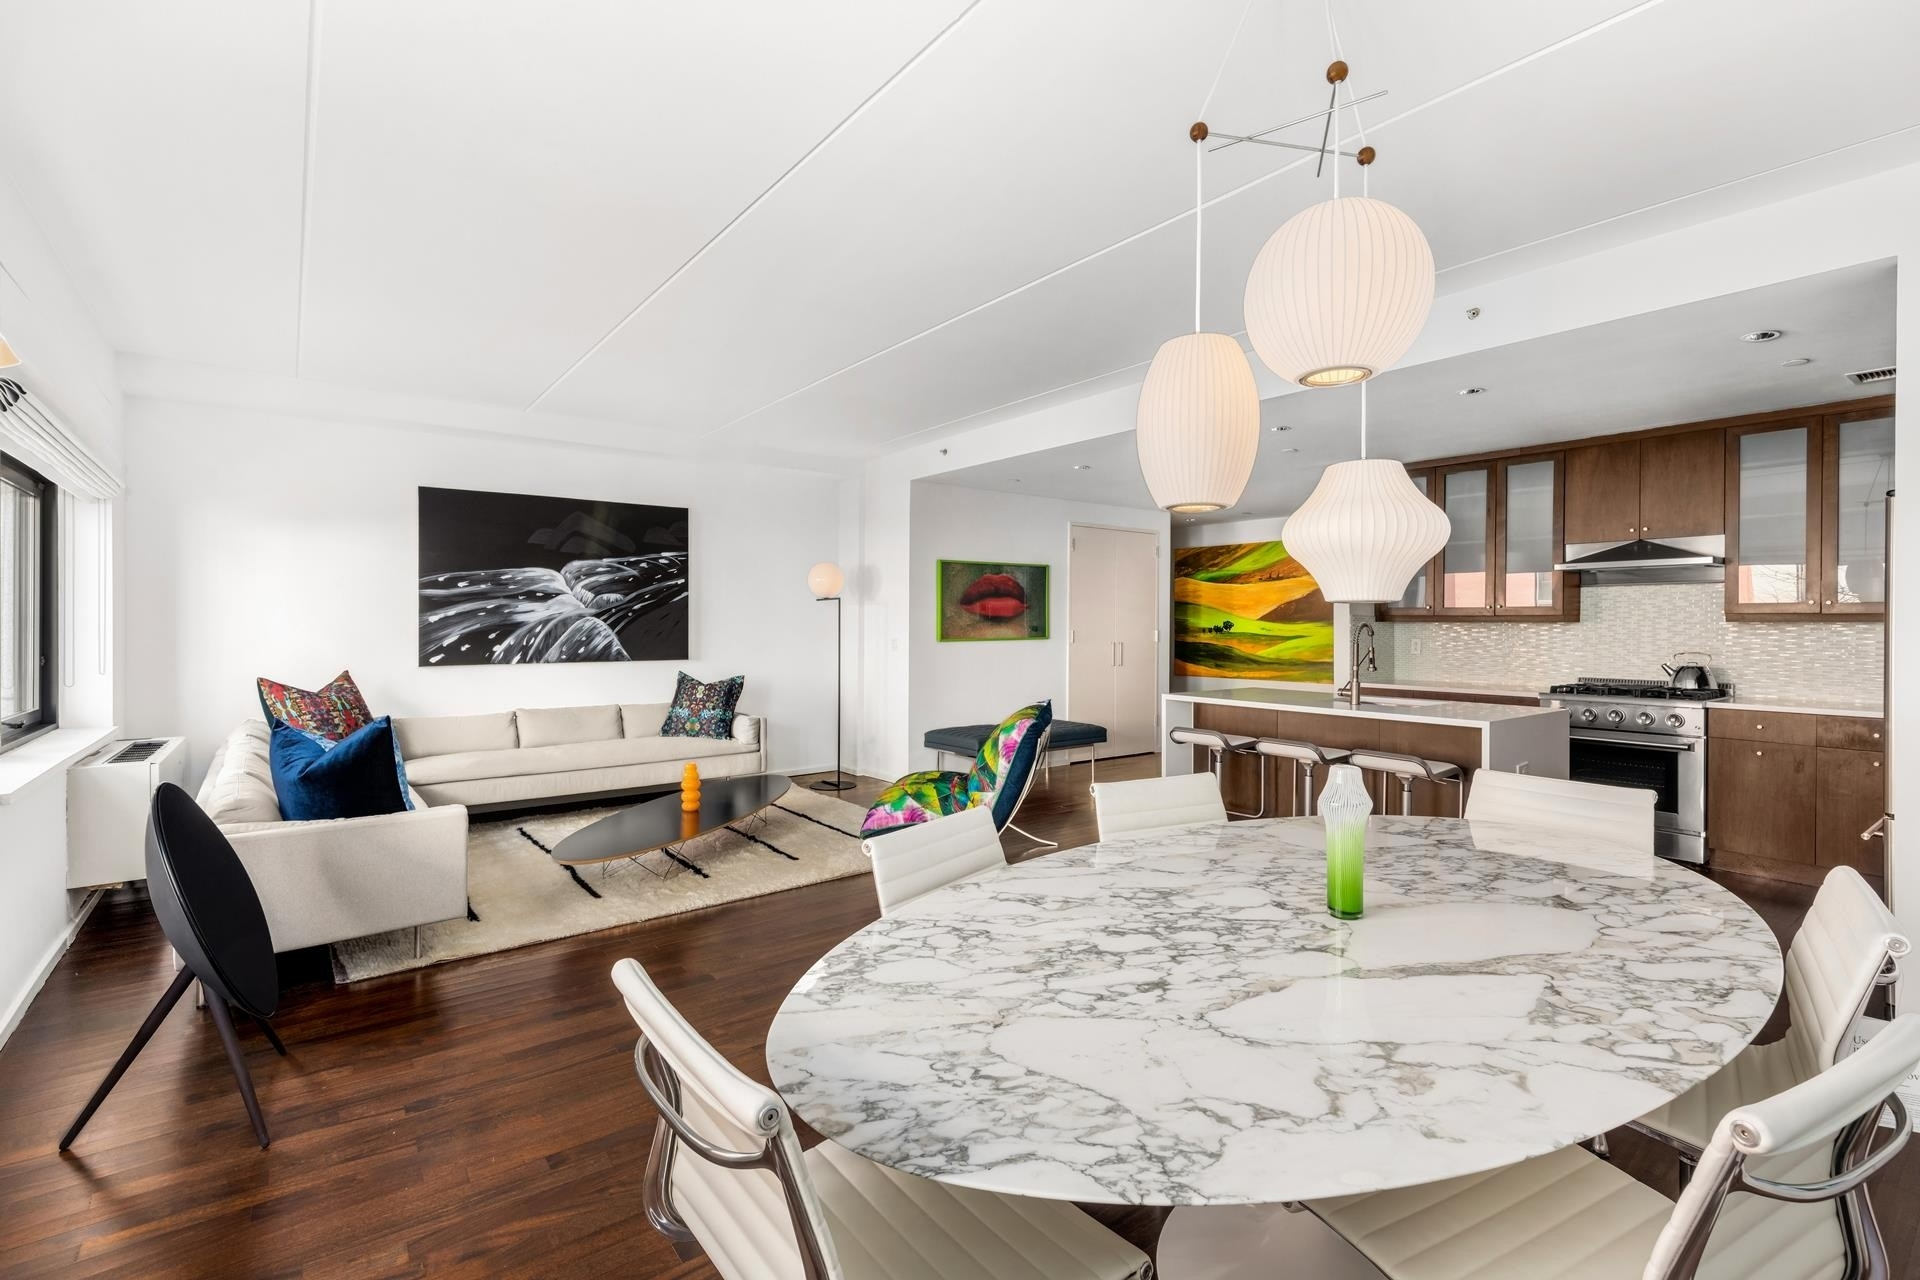 Condominium at Sedona Condos, 270 West 19th St, 2A Chelsea, New York, NY 10011